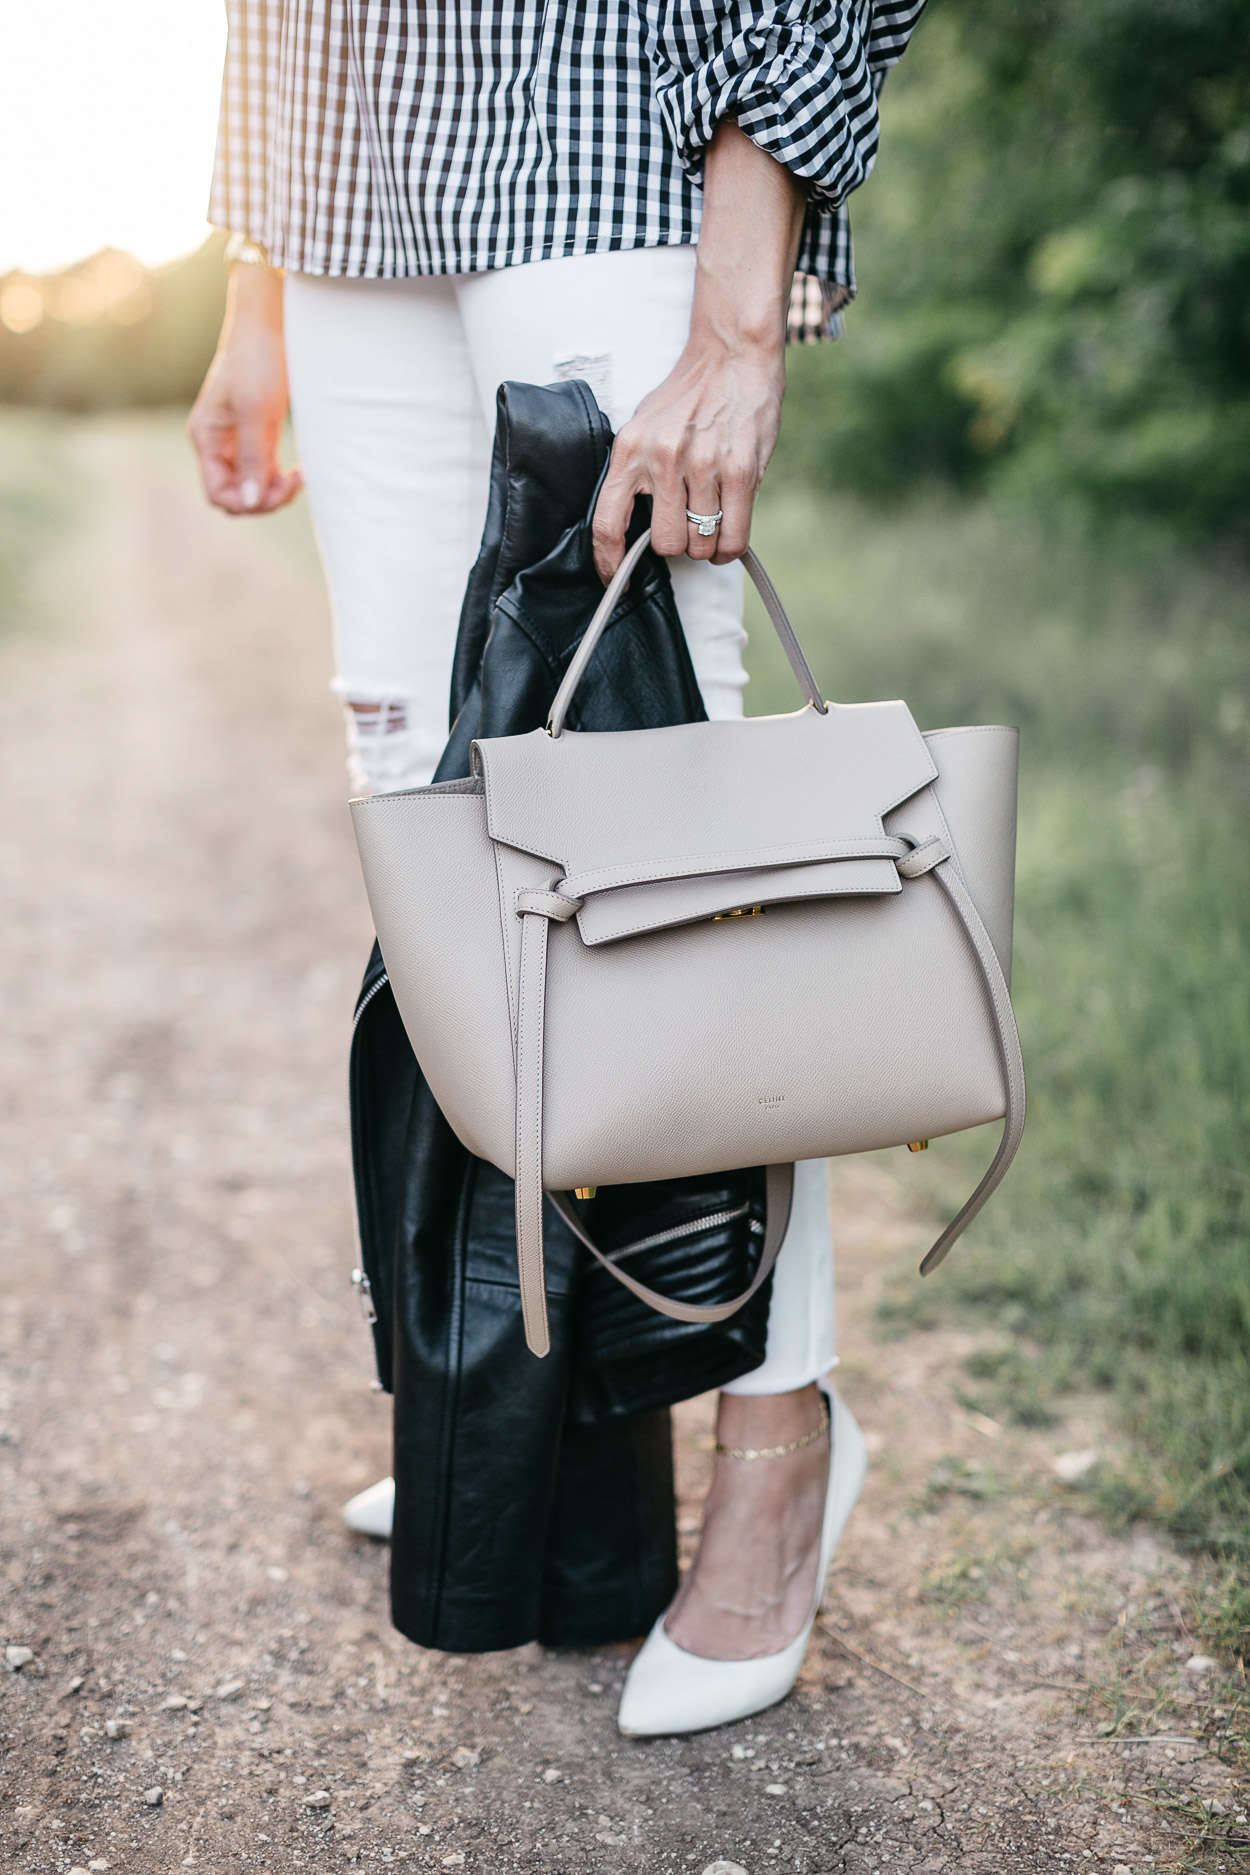 Celine belt bag is a neutral accessory favorite of South Florida fashion blogger Amanda of A Glam Lifestyle